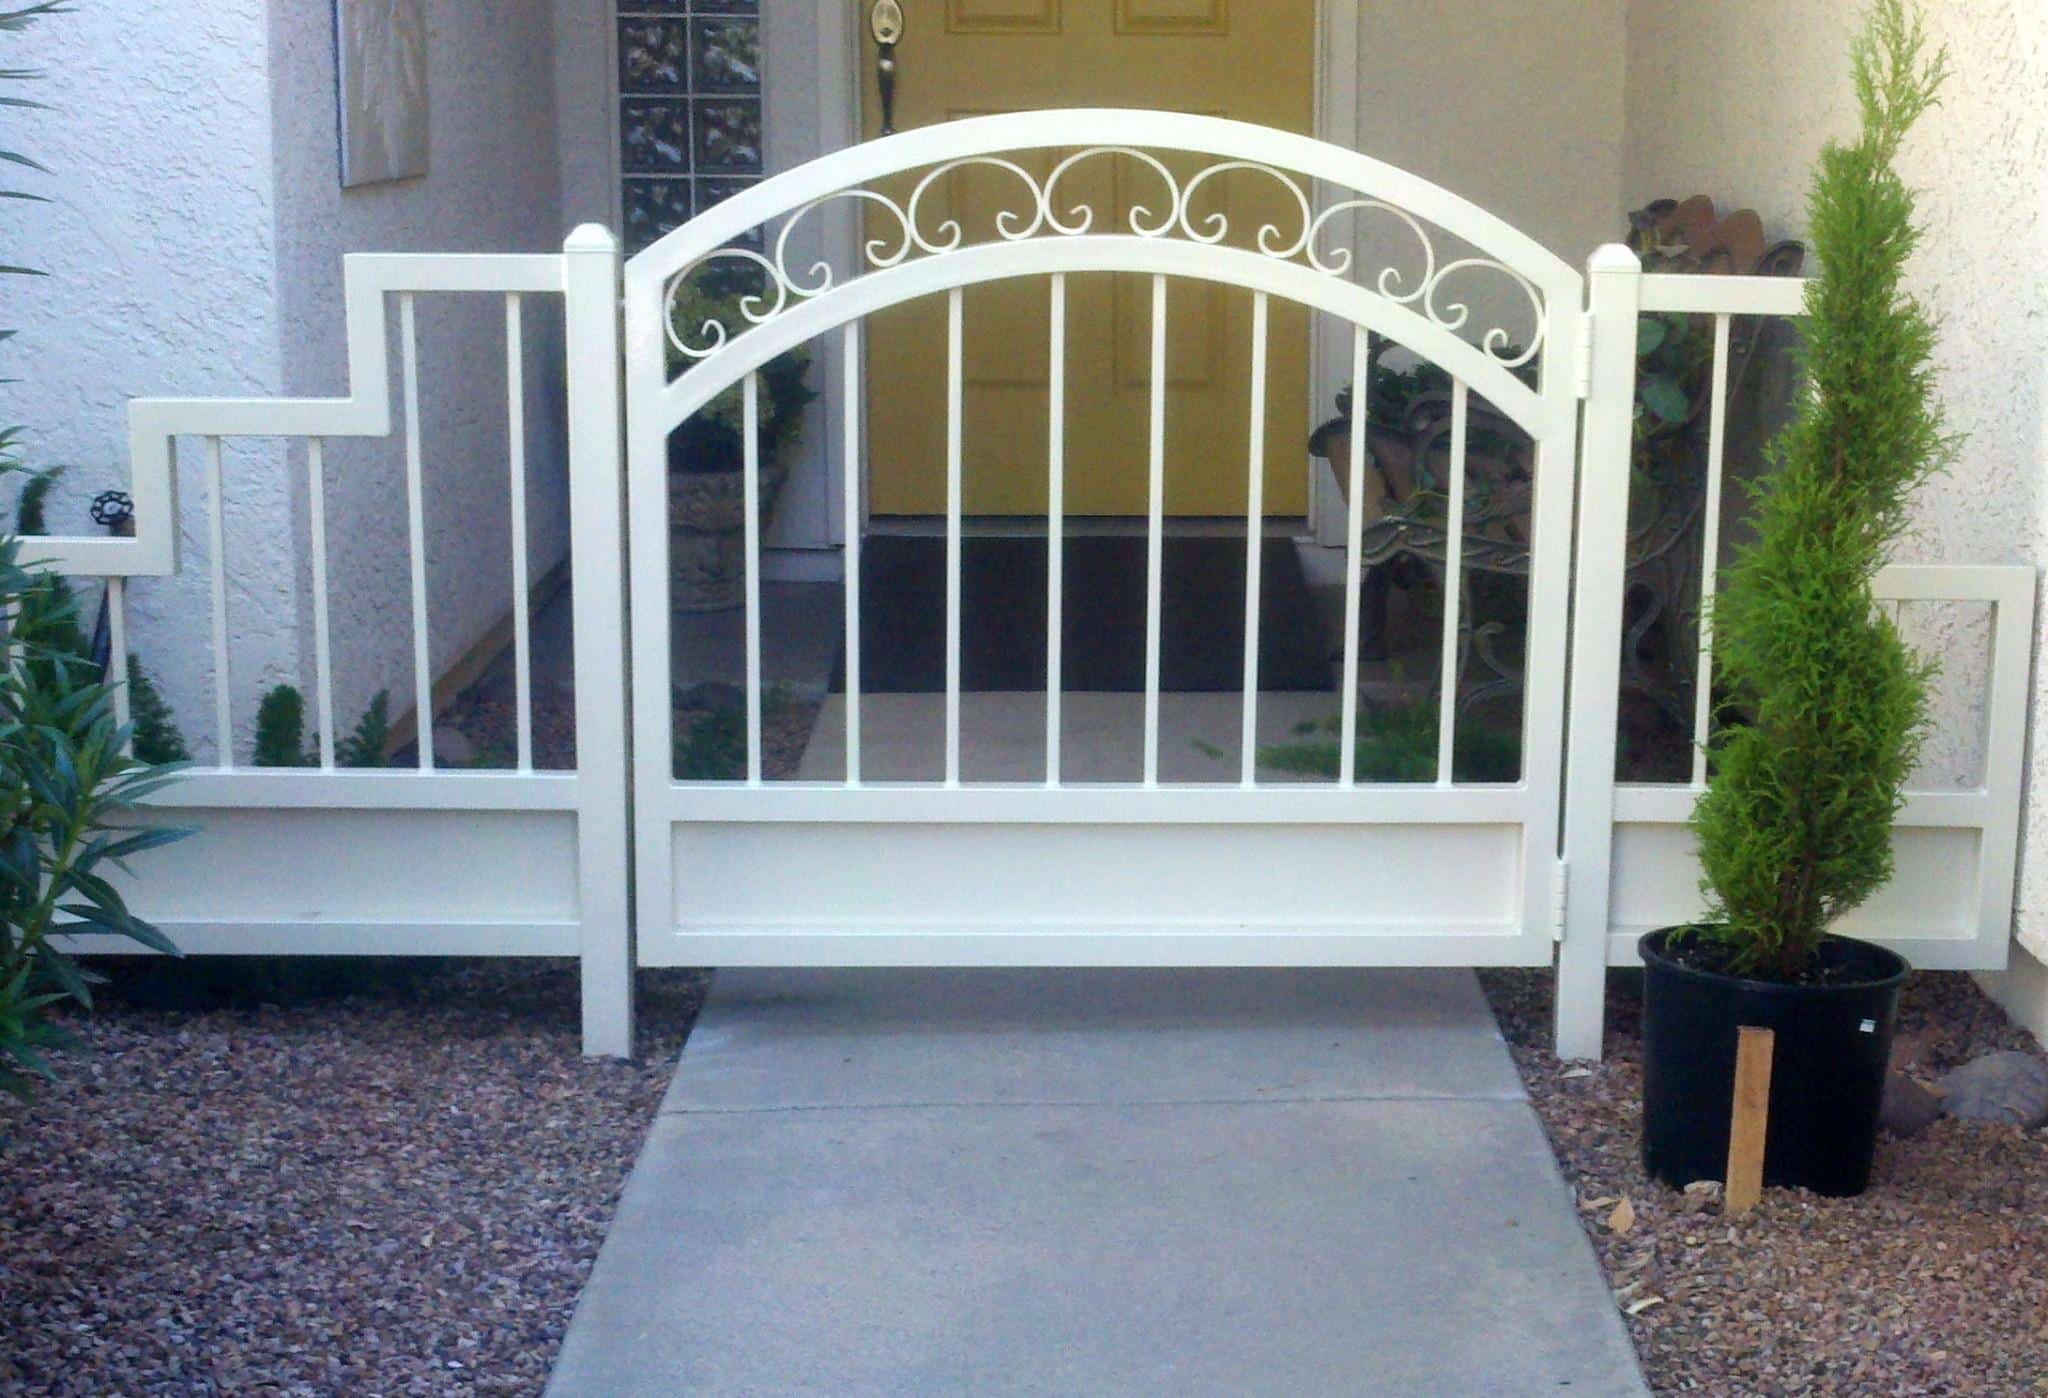 Custom Ornamental Iron Gate With Scrolls | Tuscan Gate | Metal Gate | Gate With Arch | Powder Coated Gate | Gate With Side Panels